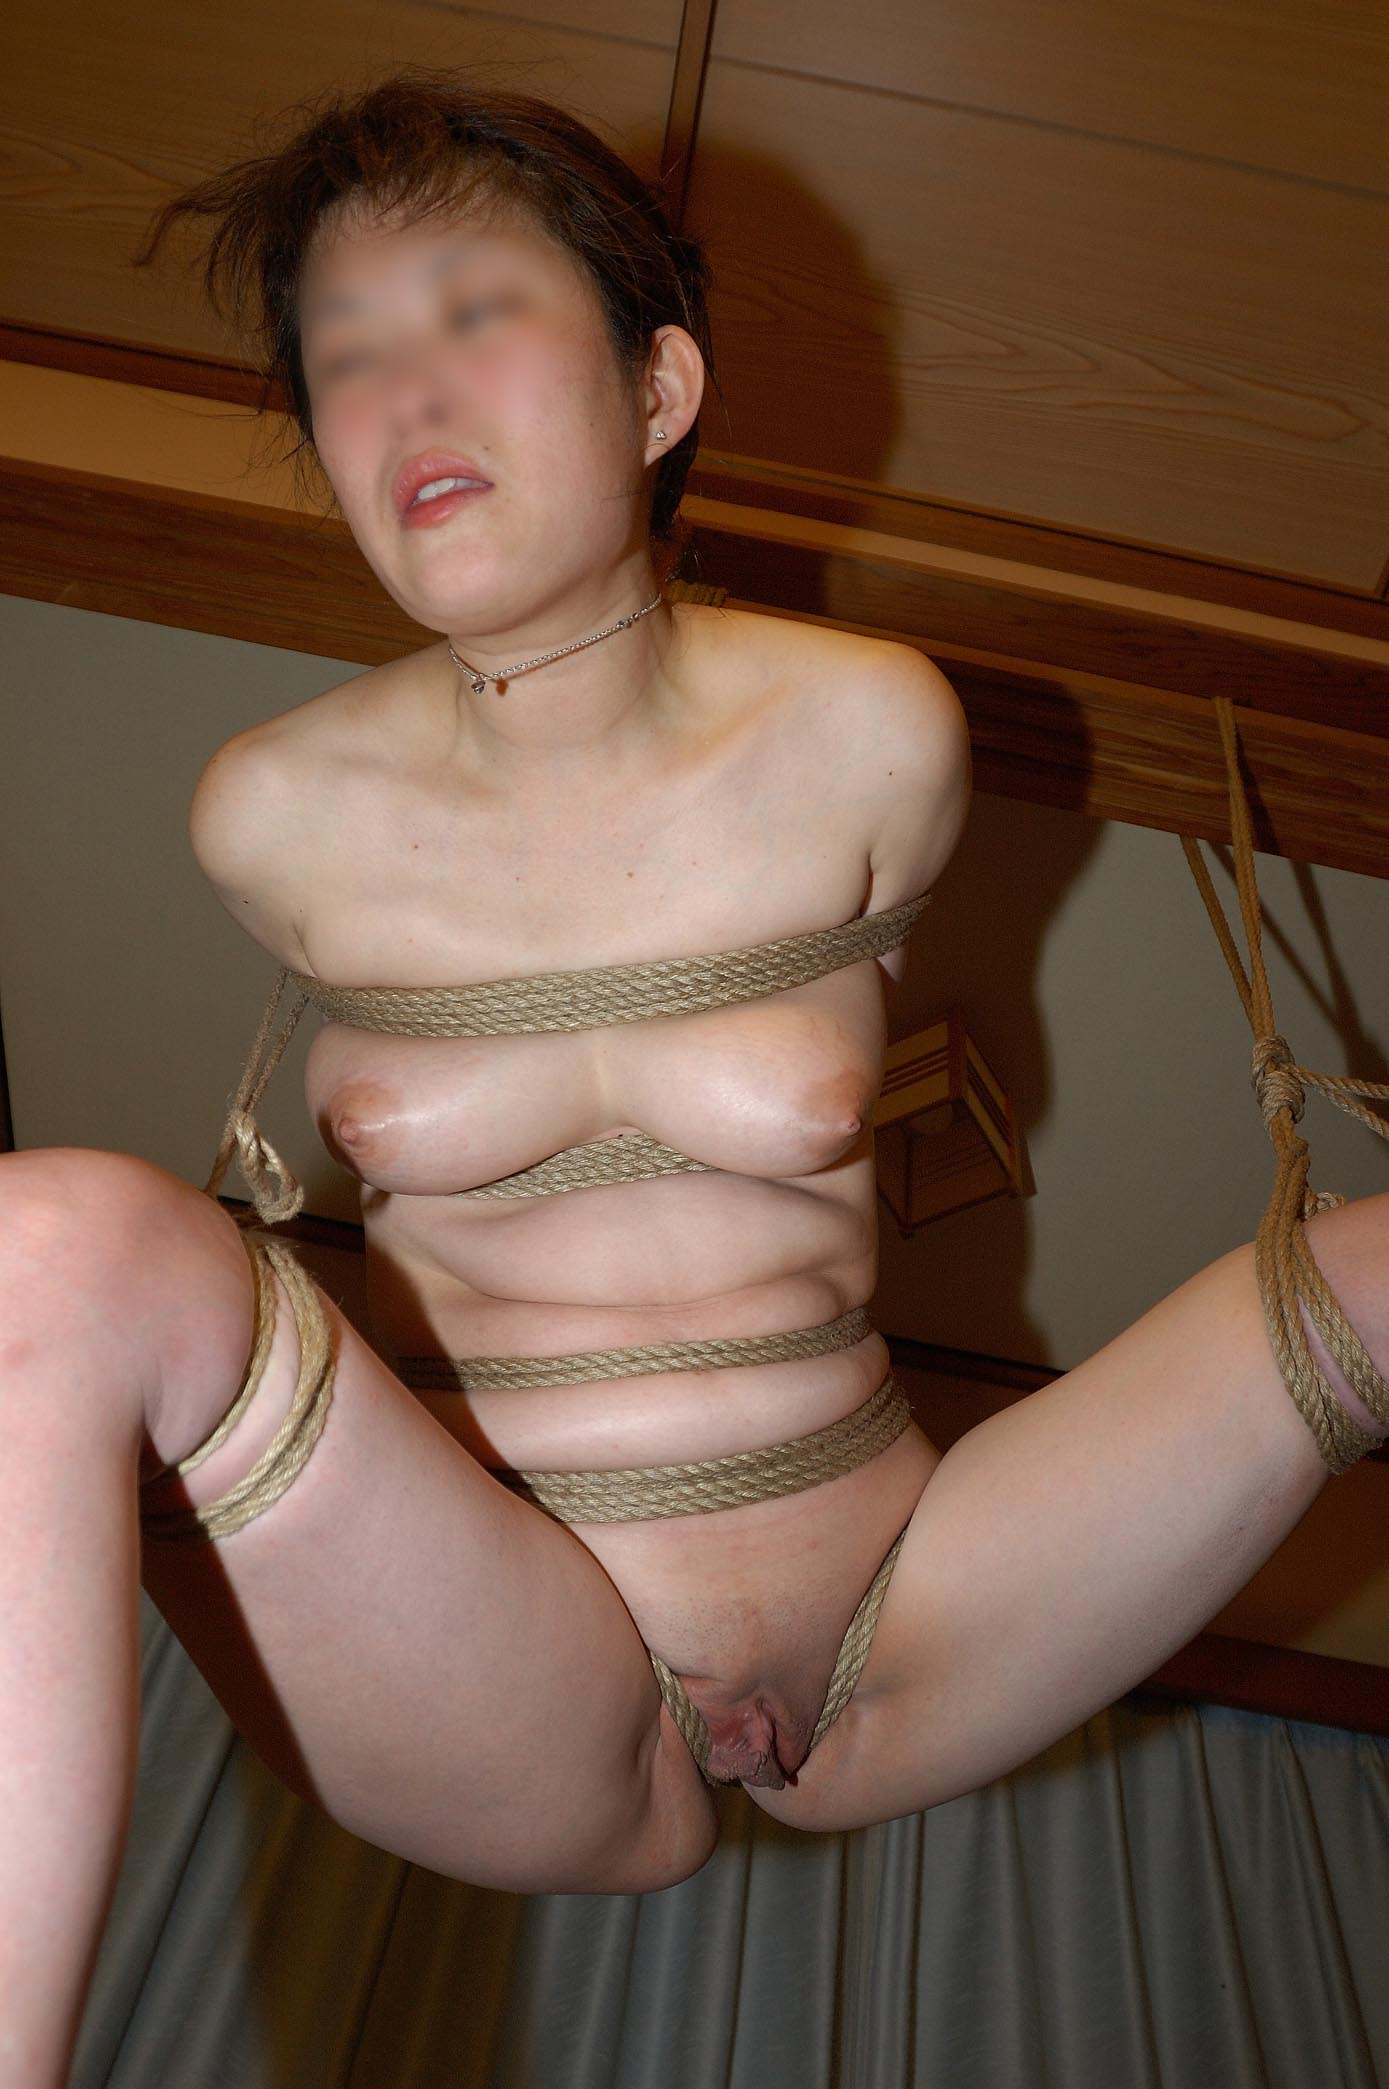 She's homemade bondage porn